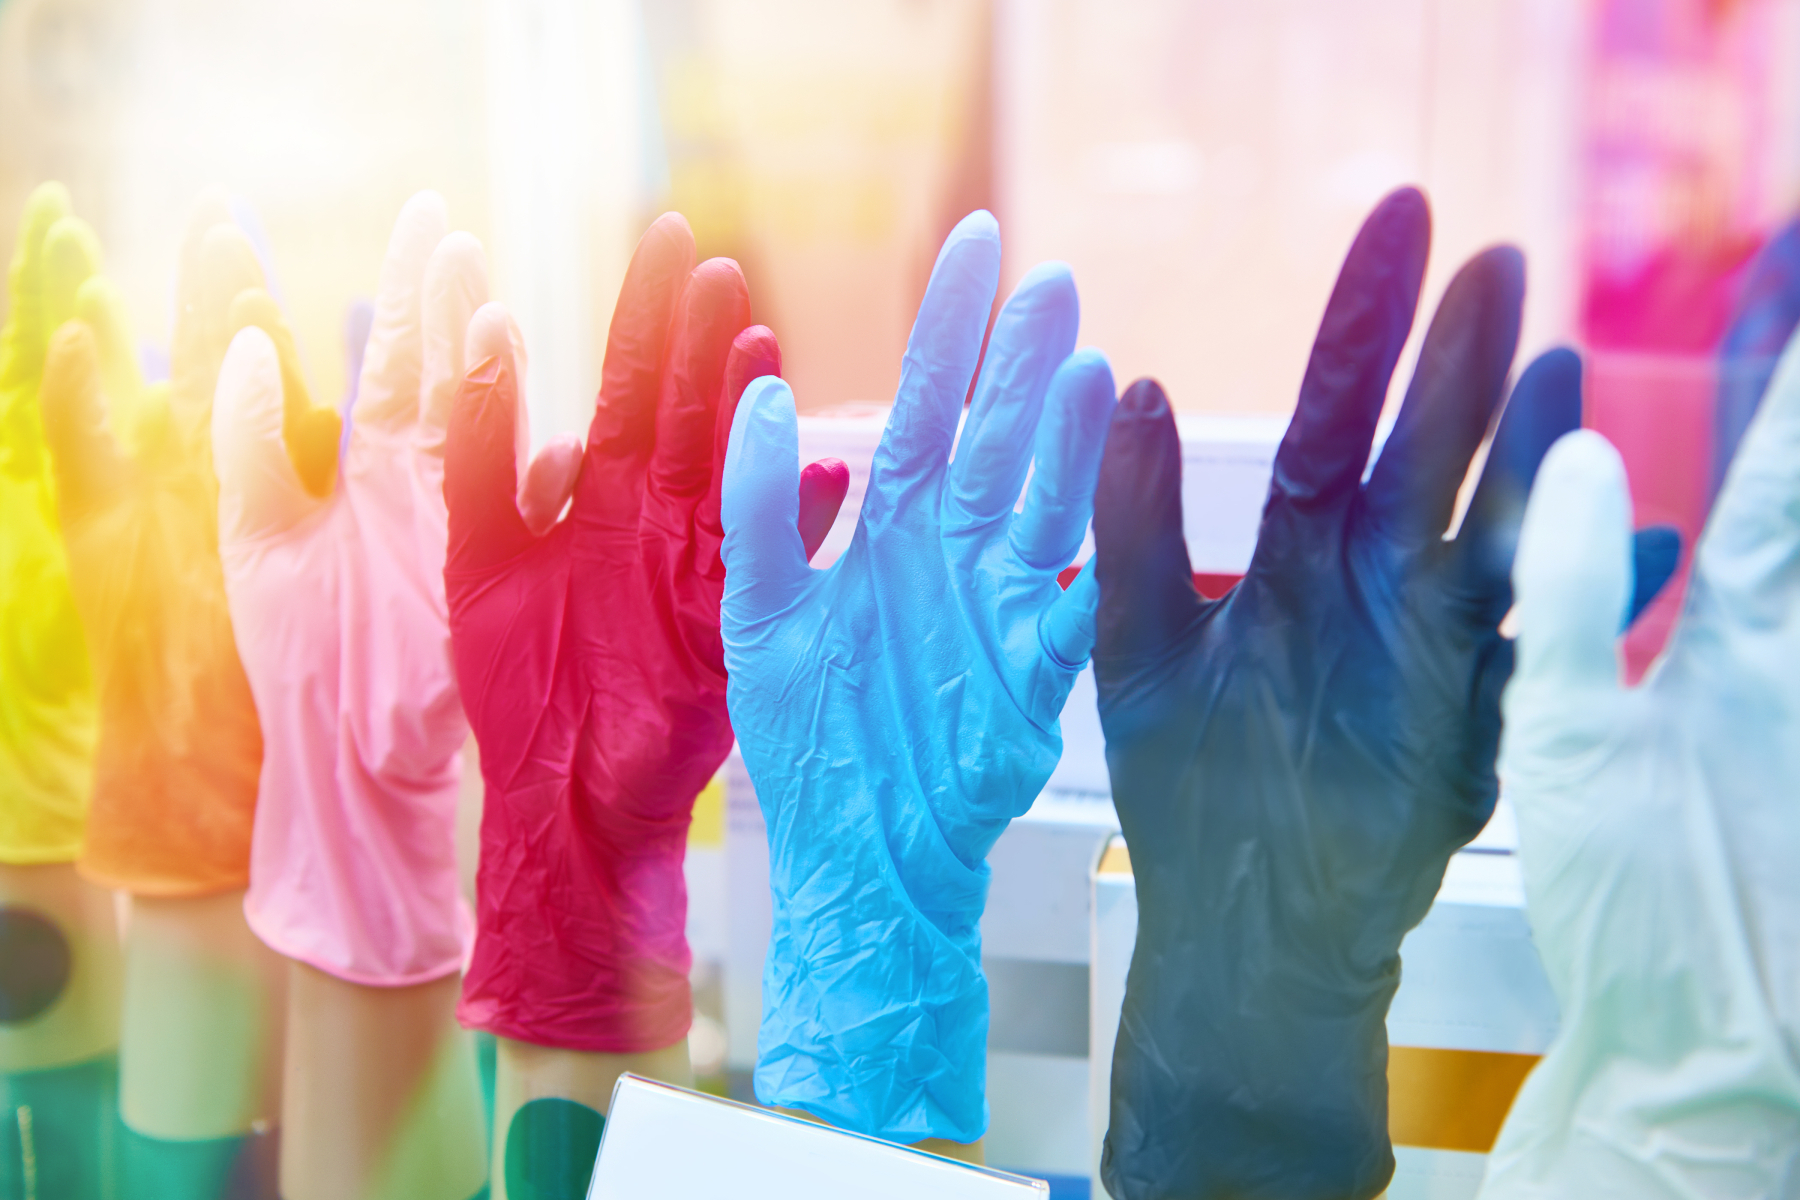 Does Hand Glove Color Matter?